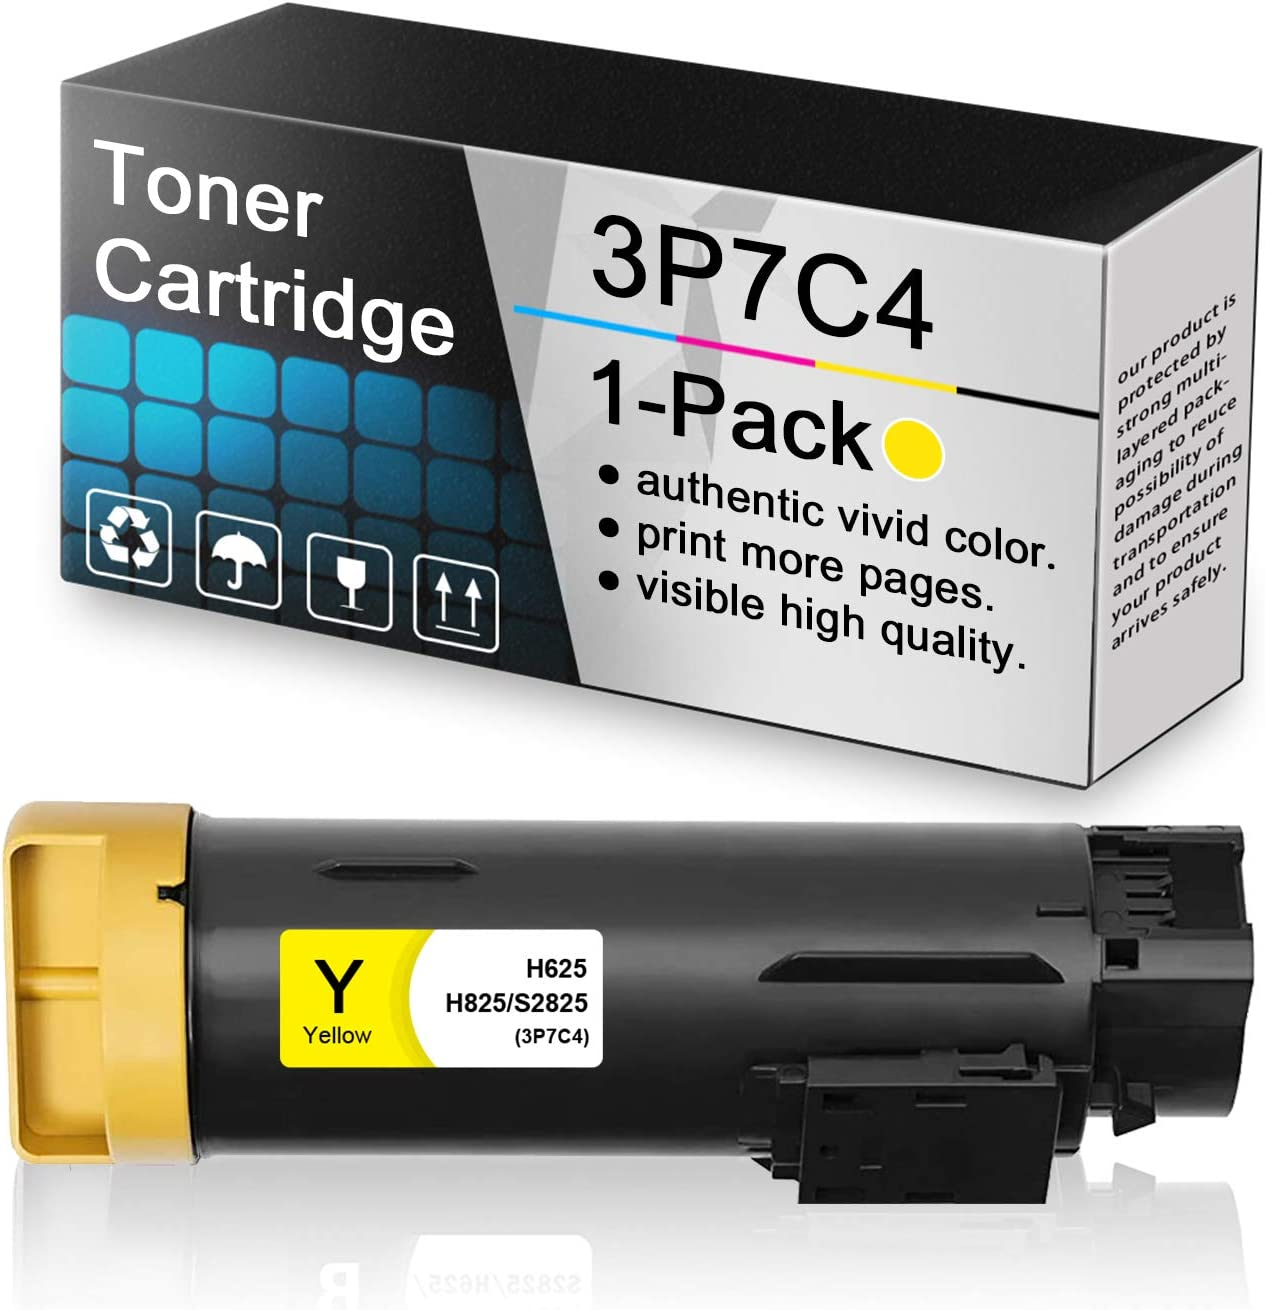 1-Pack Yellow 3P7C4 Compatible Toner Cartridge Replacement for Dell h625 to use with Dell H625 H625cdw H825 H825cdw S2825cdn S2825 Printers.